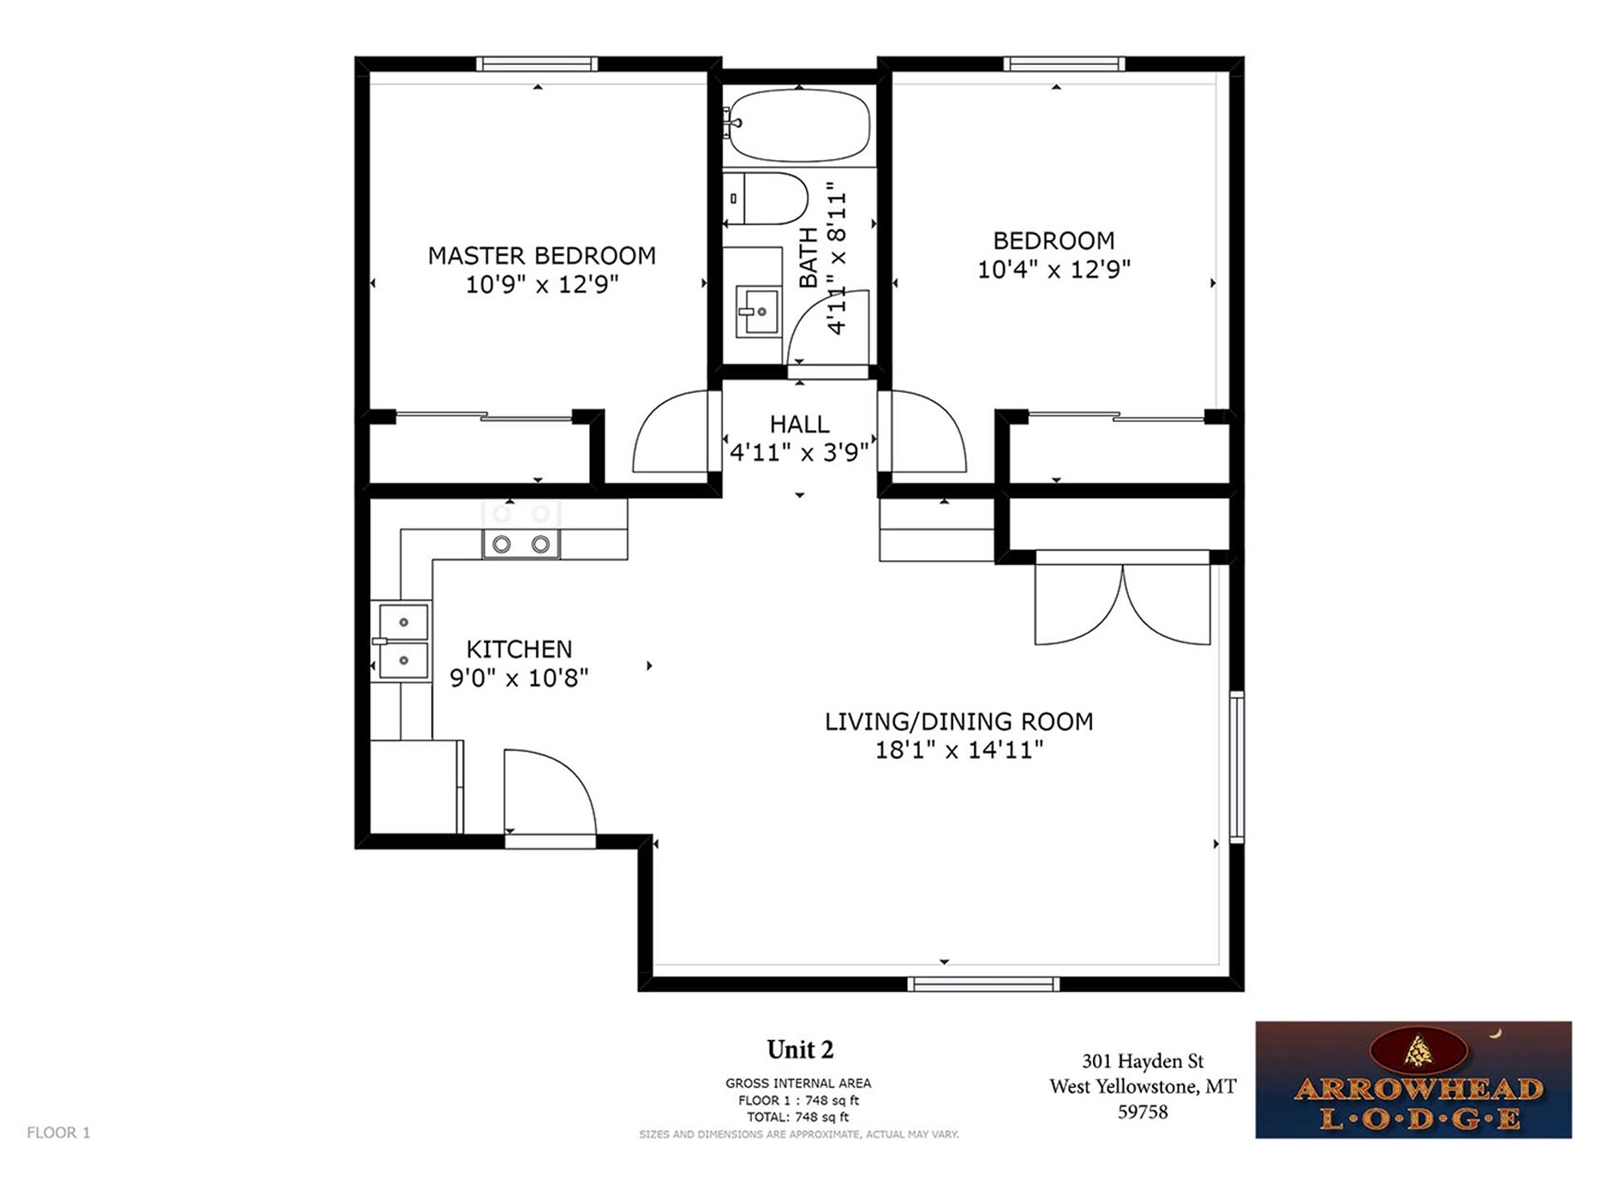 Floor Plan for Arrowhead Condos Unit 2